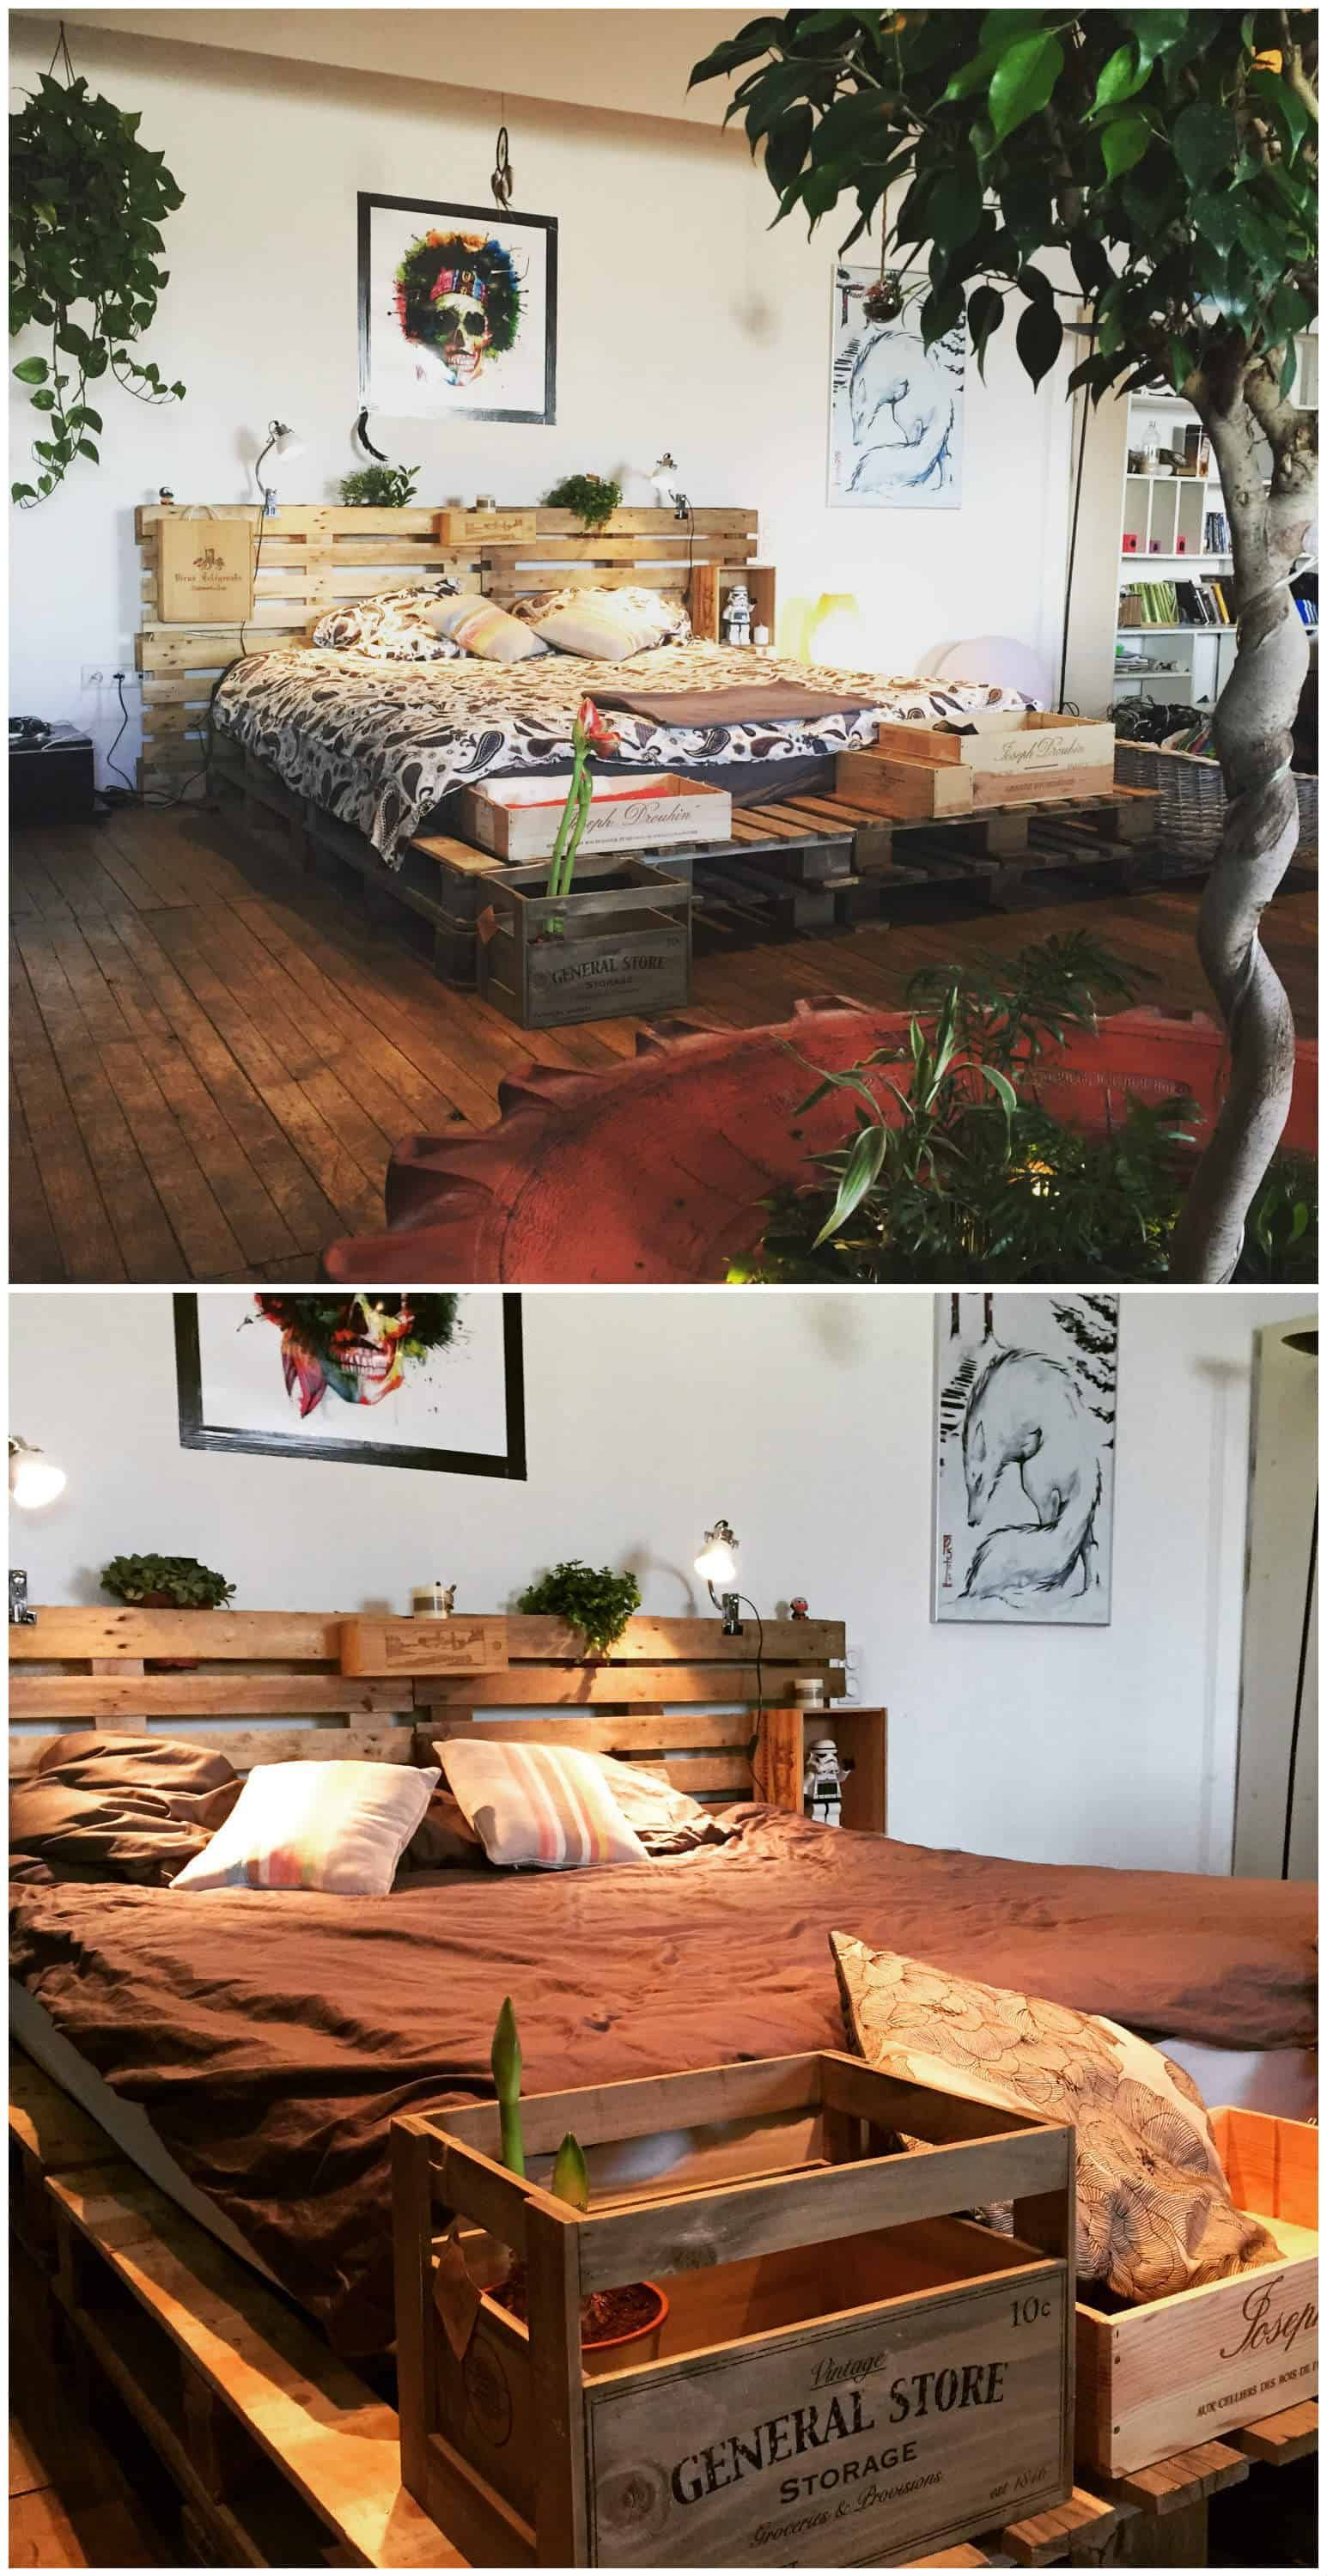 To make this palletbed frame, I used ten pallets (120x120cm), and leftover wine